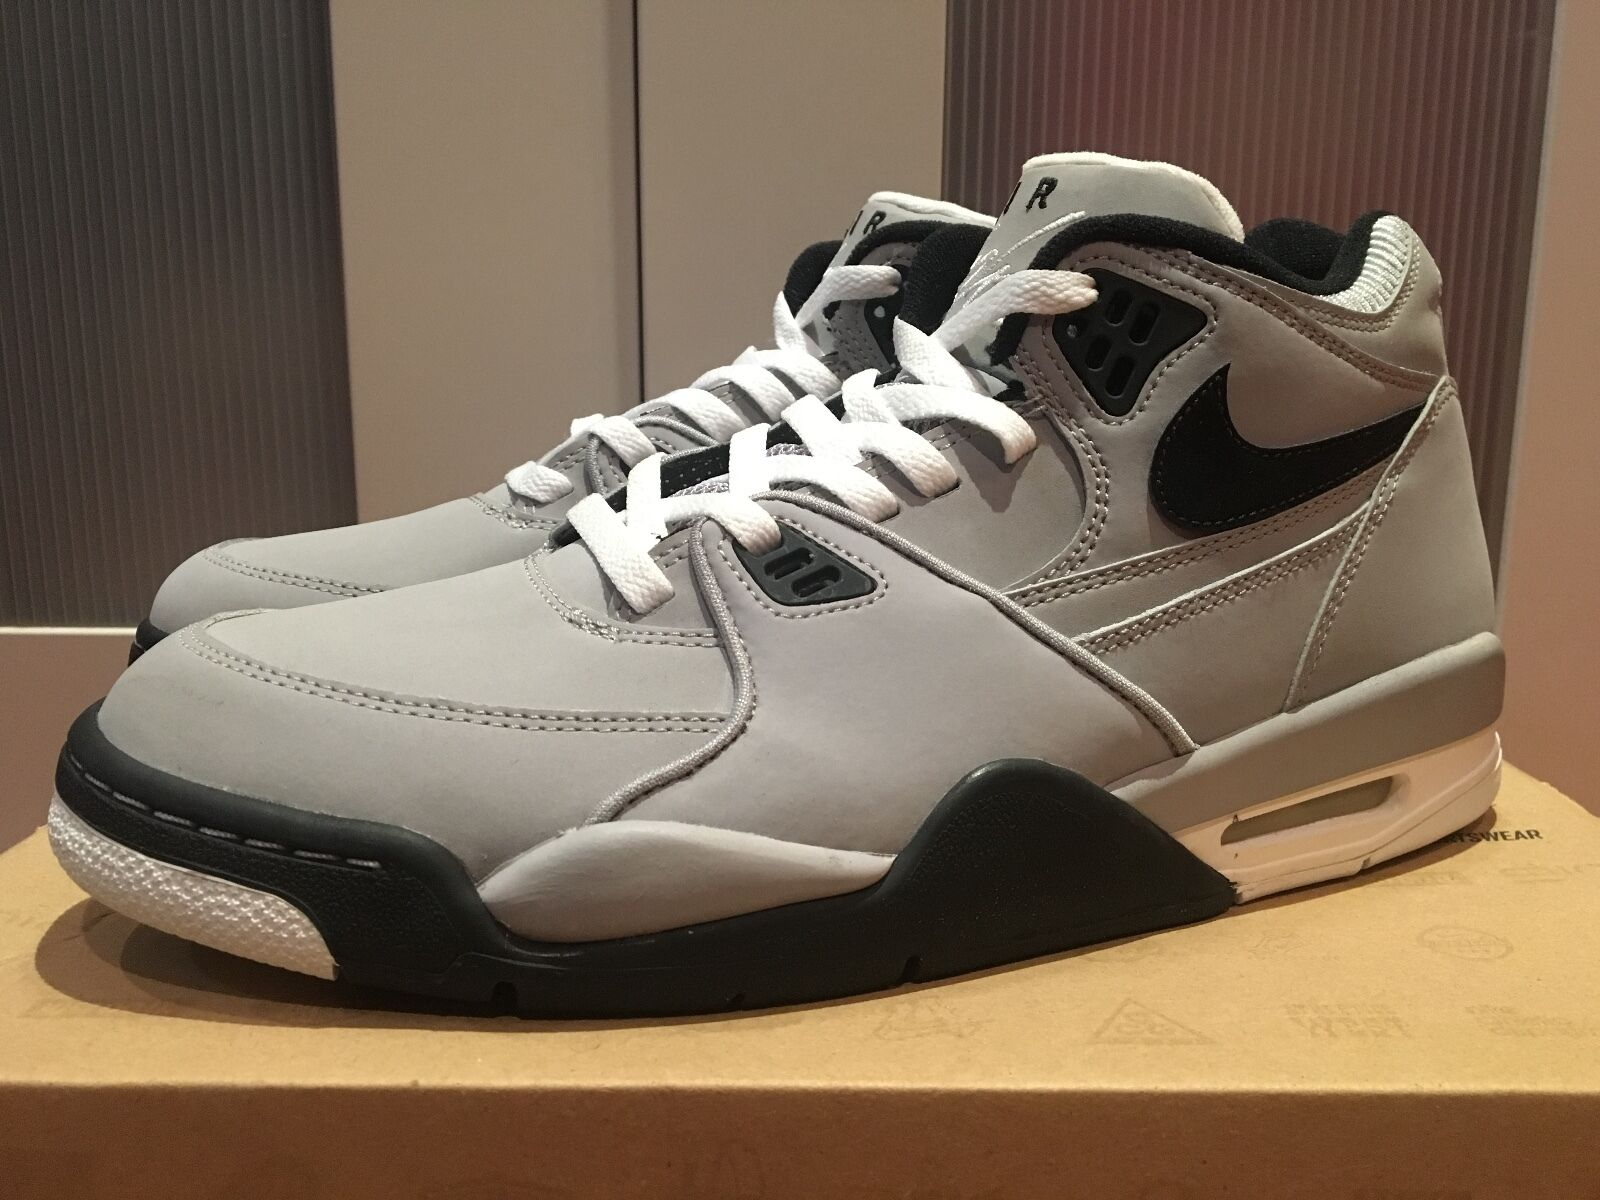 Nike Air Flight 89 Wolf Grigio US10.5 | Air Jordan 4 Inspired doernbecher pinnacle